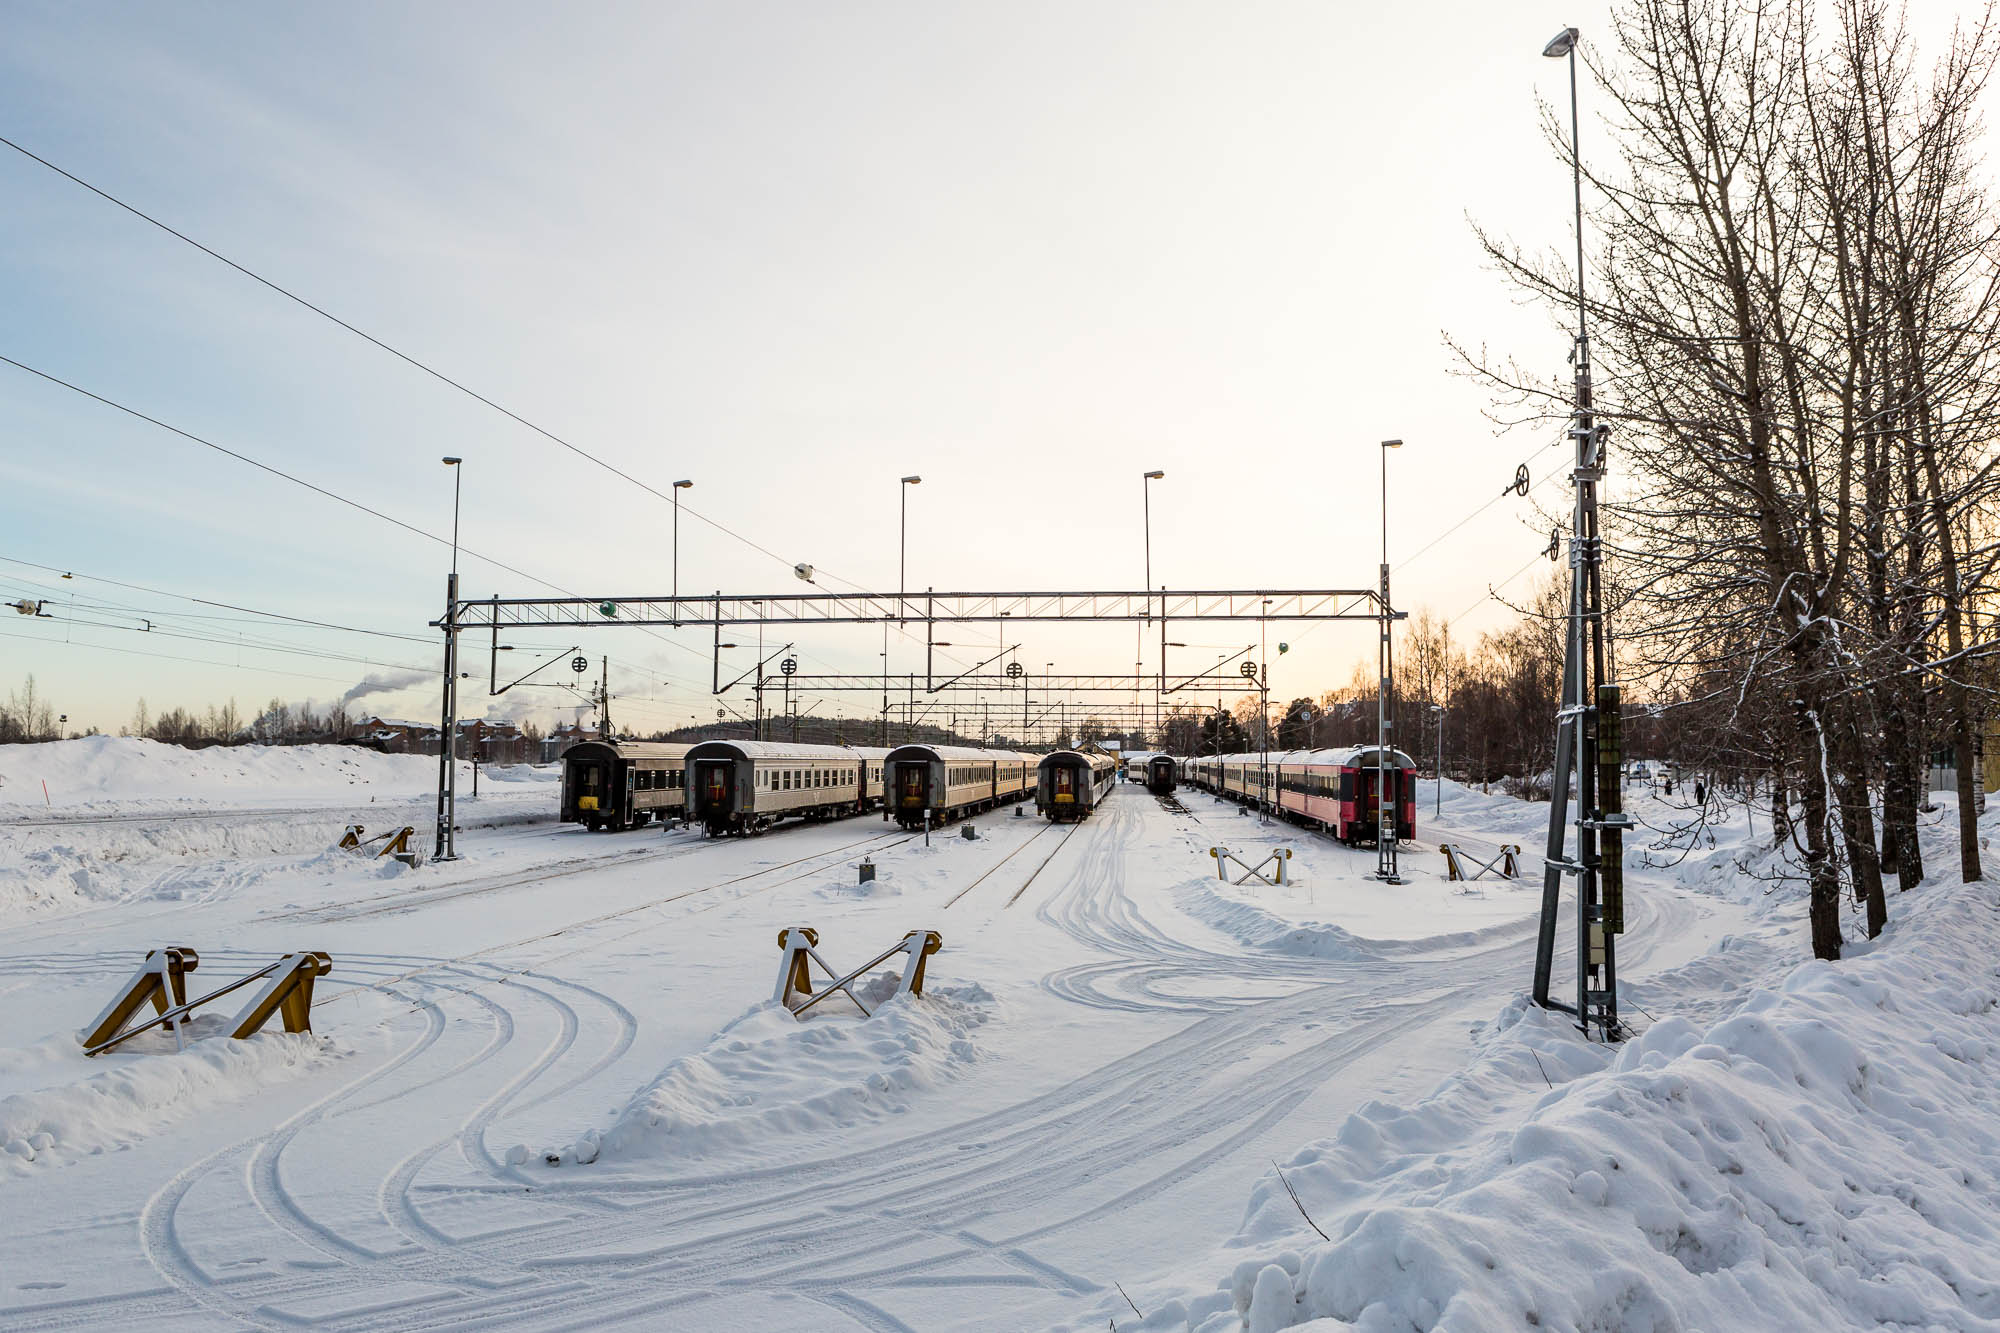 Train yard, Luleå, Sweden January 2017, Ben Lee Photography